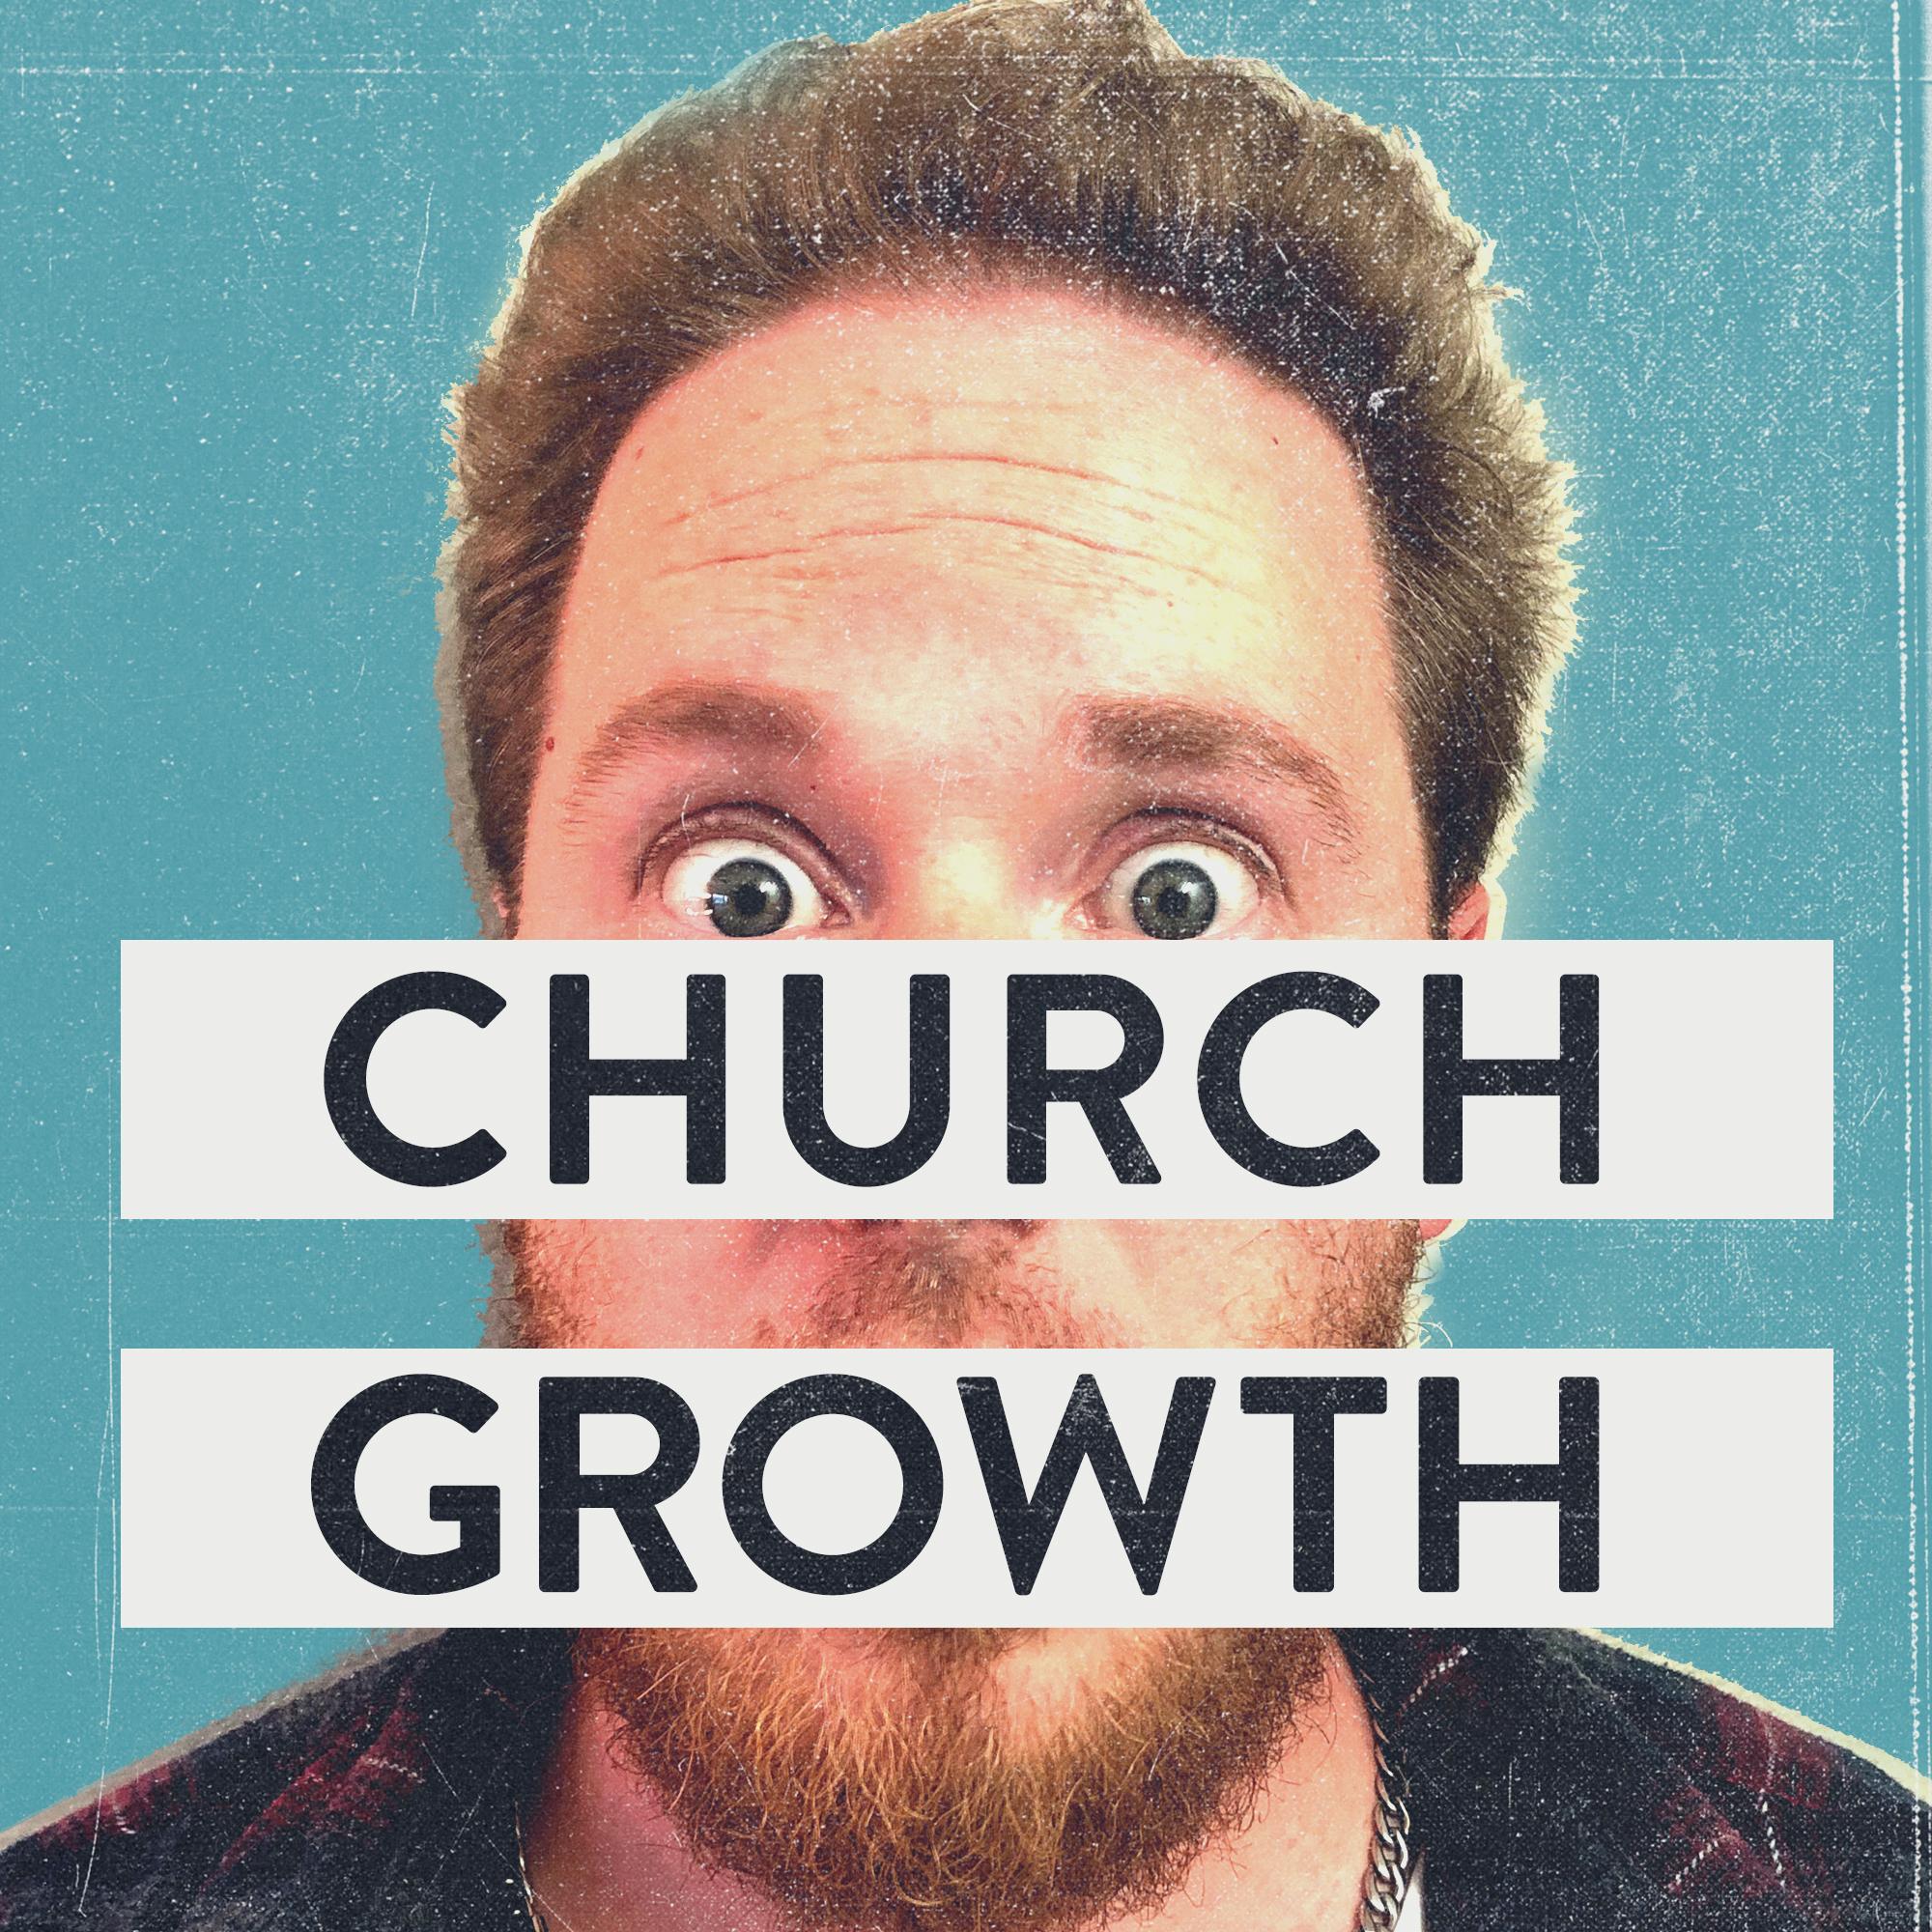 Church Growth Problems | Obed Martinez Part 1